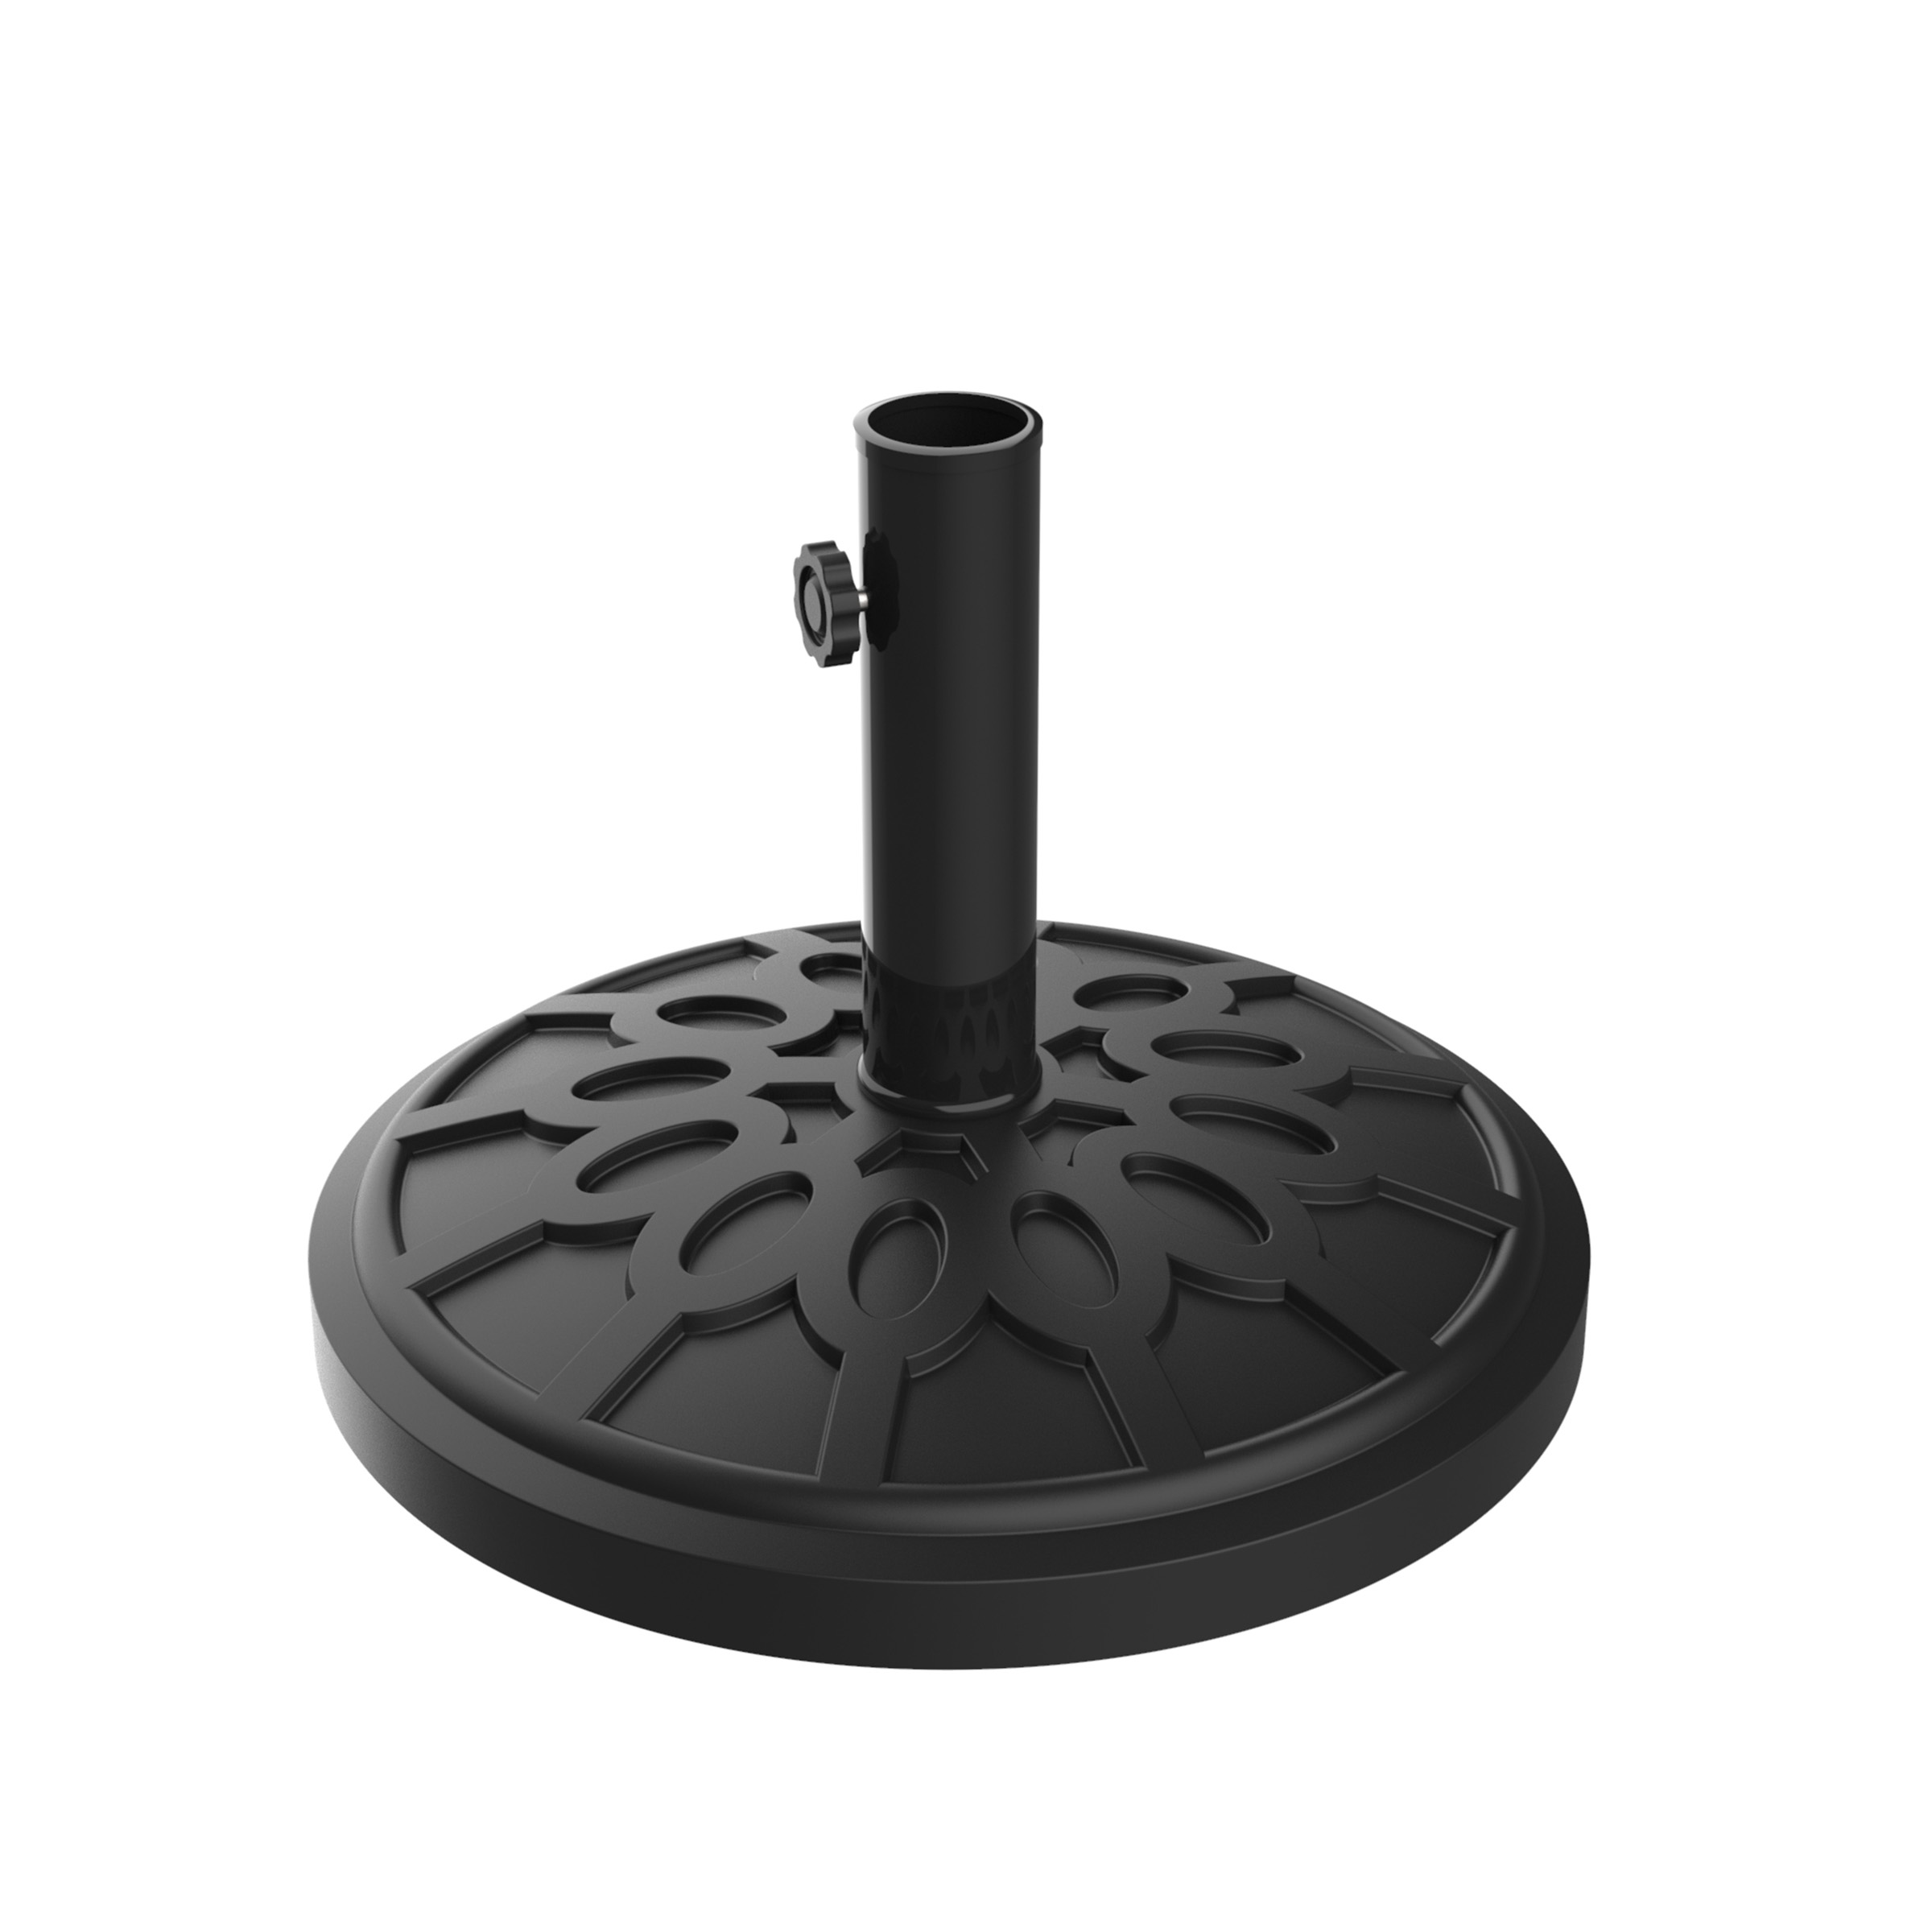 "Umbrella Base Outdoor Patio Umbrella Holder, Heavy Weight Holds Up To 1.9"" Pole Freestanding, Table, Deck, Balcony, Backyard, Poolside by Pure Garden"